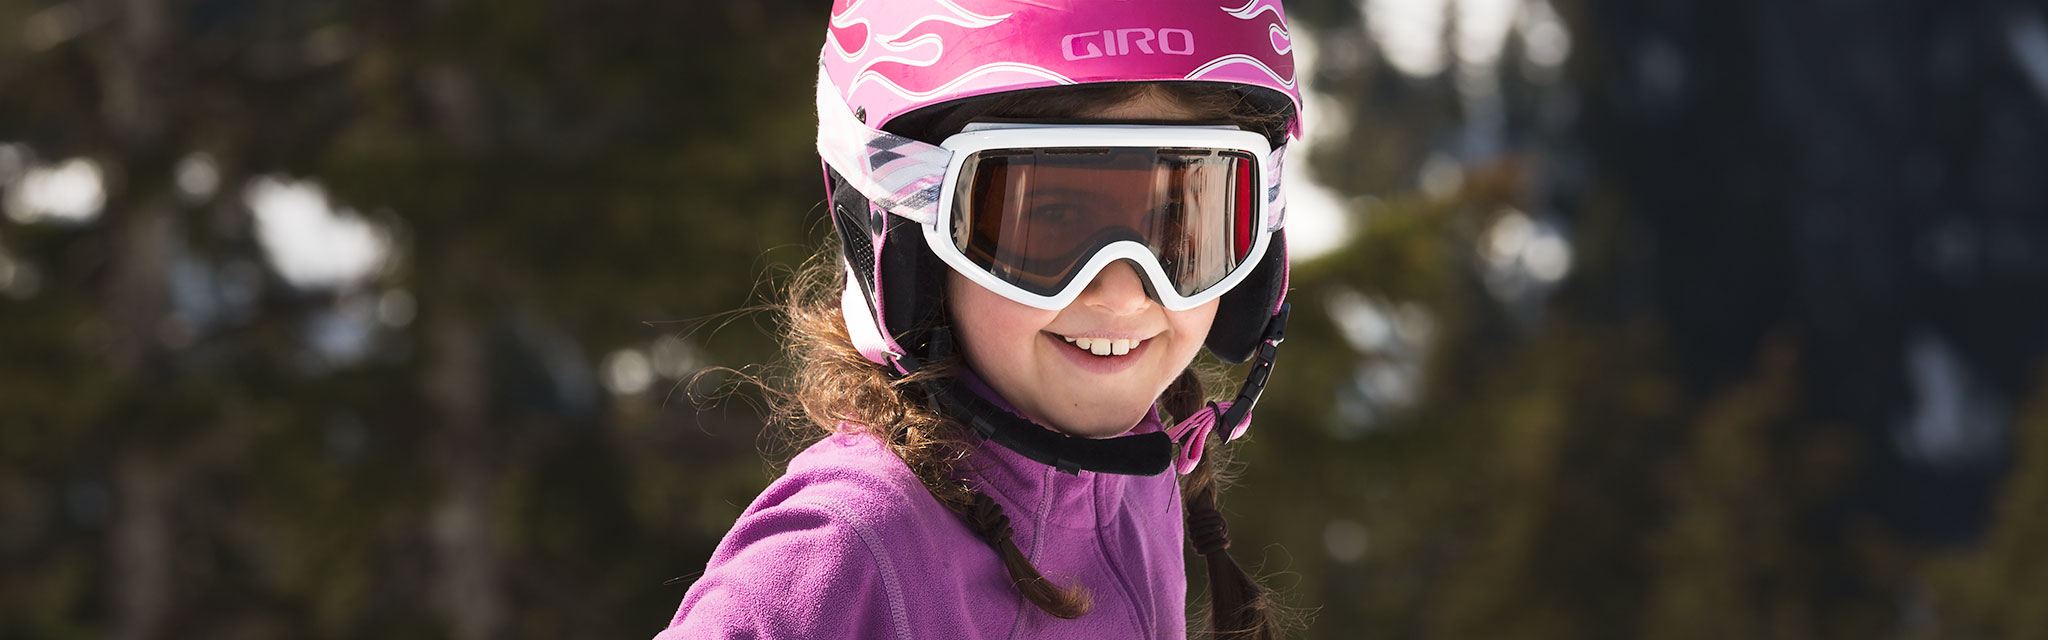 slider-u10-girl-pink-smile